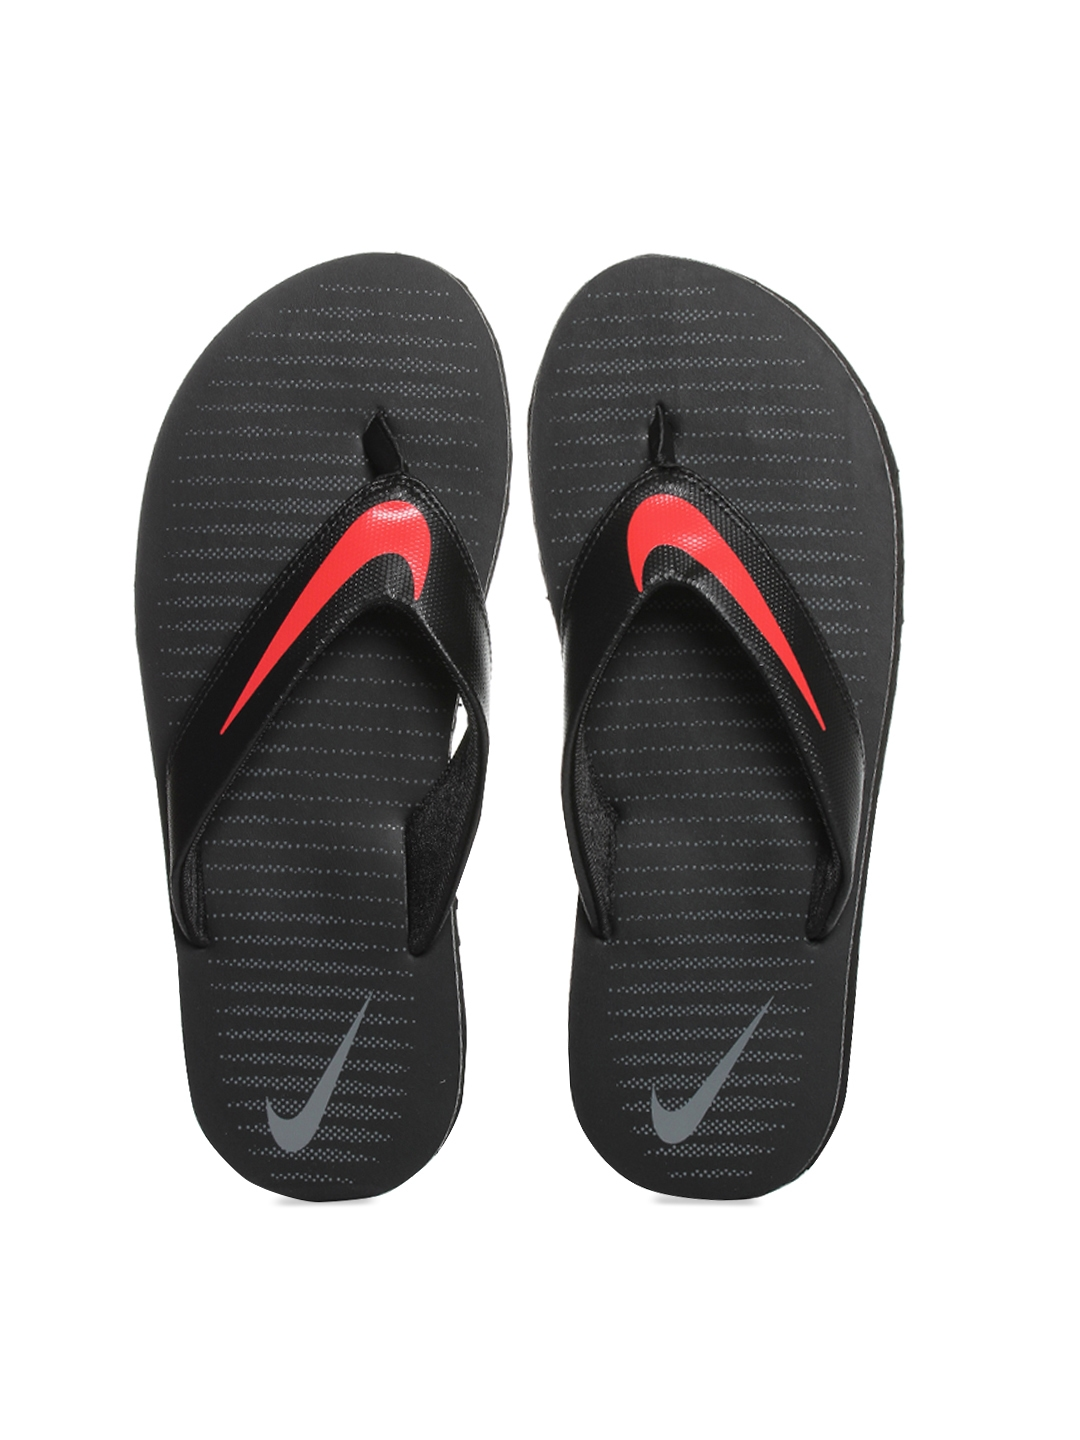 Nike Air thong 5 Black Thong Flip Flop 2014 for sale marketable affordable sale online official cheap price xNvuLsm